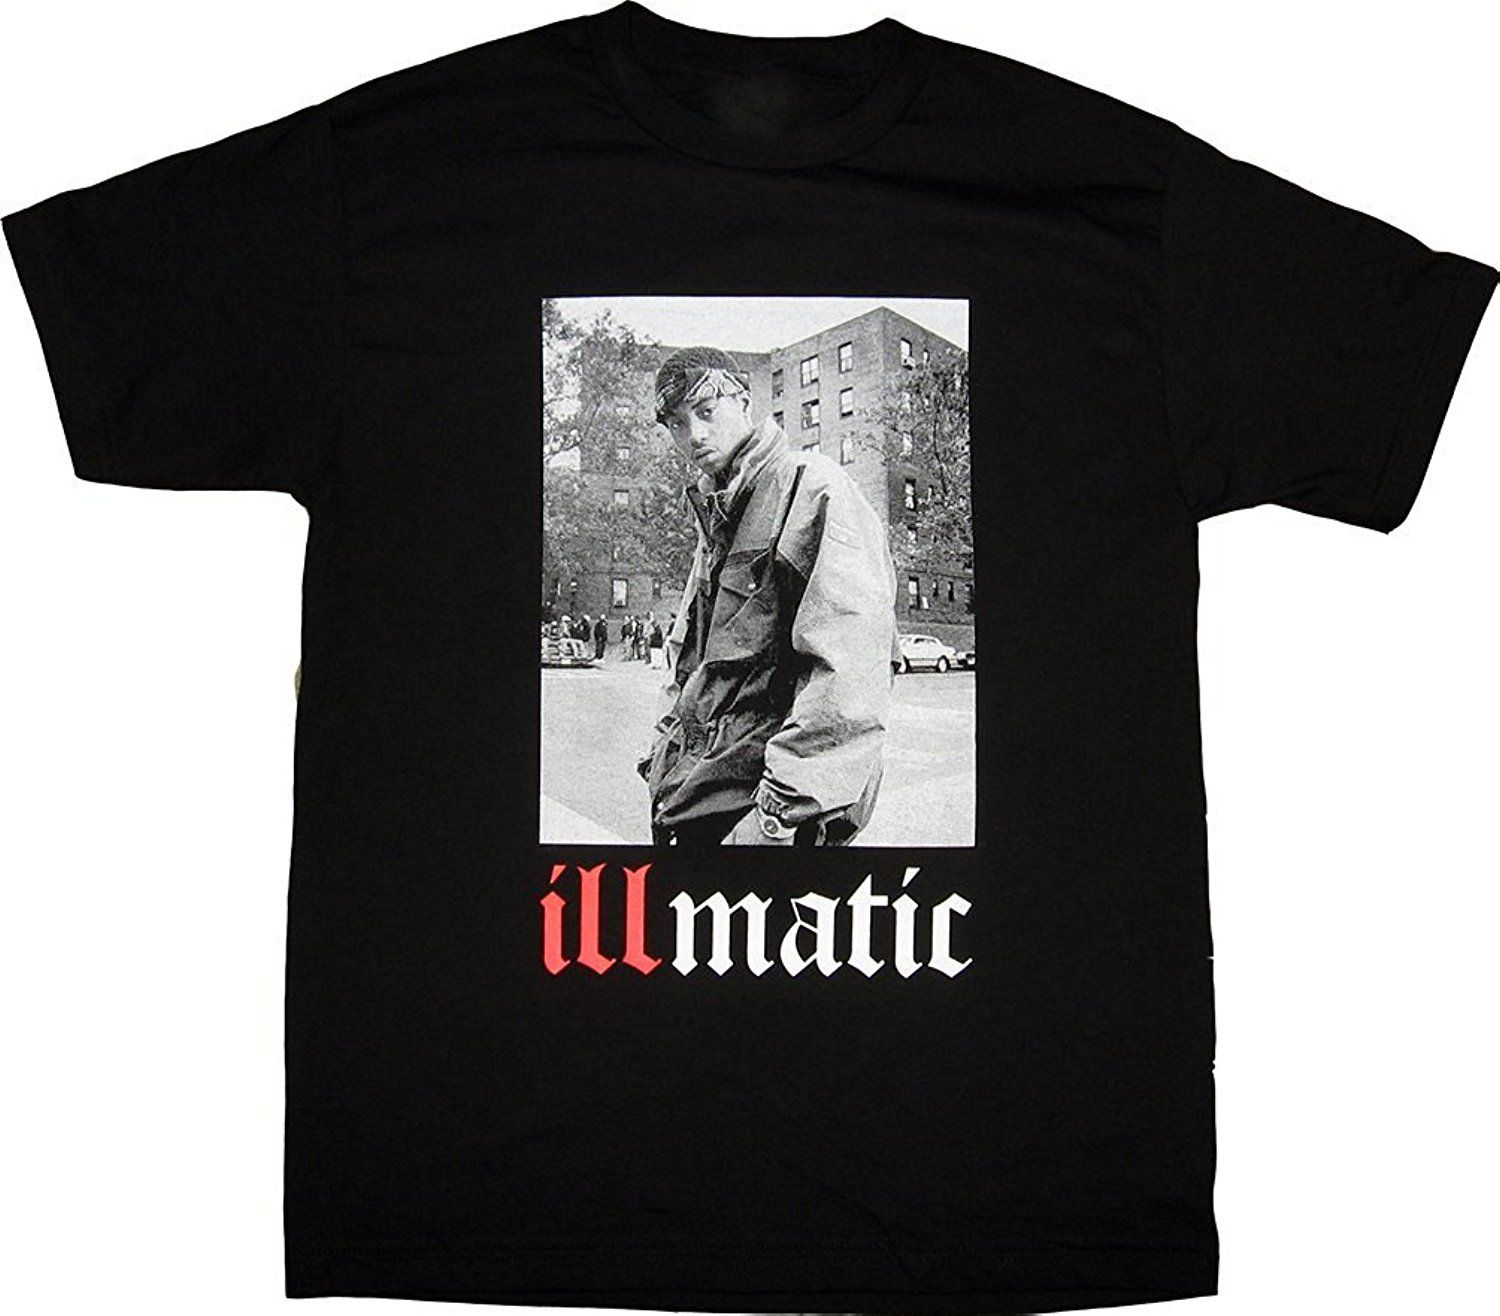 ISB Products Ill Street Blues Golden Era Real Hip Hop Classic Illmatic T-Shirt Top Quality T Shirts Men O Neck Top Tee